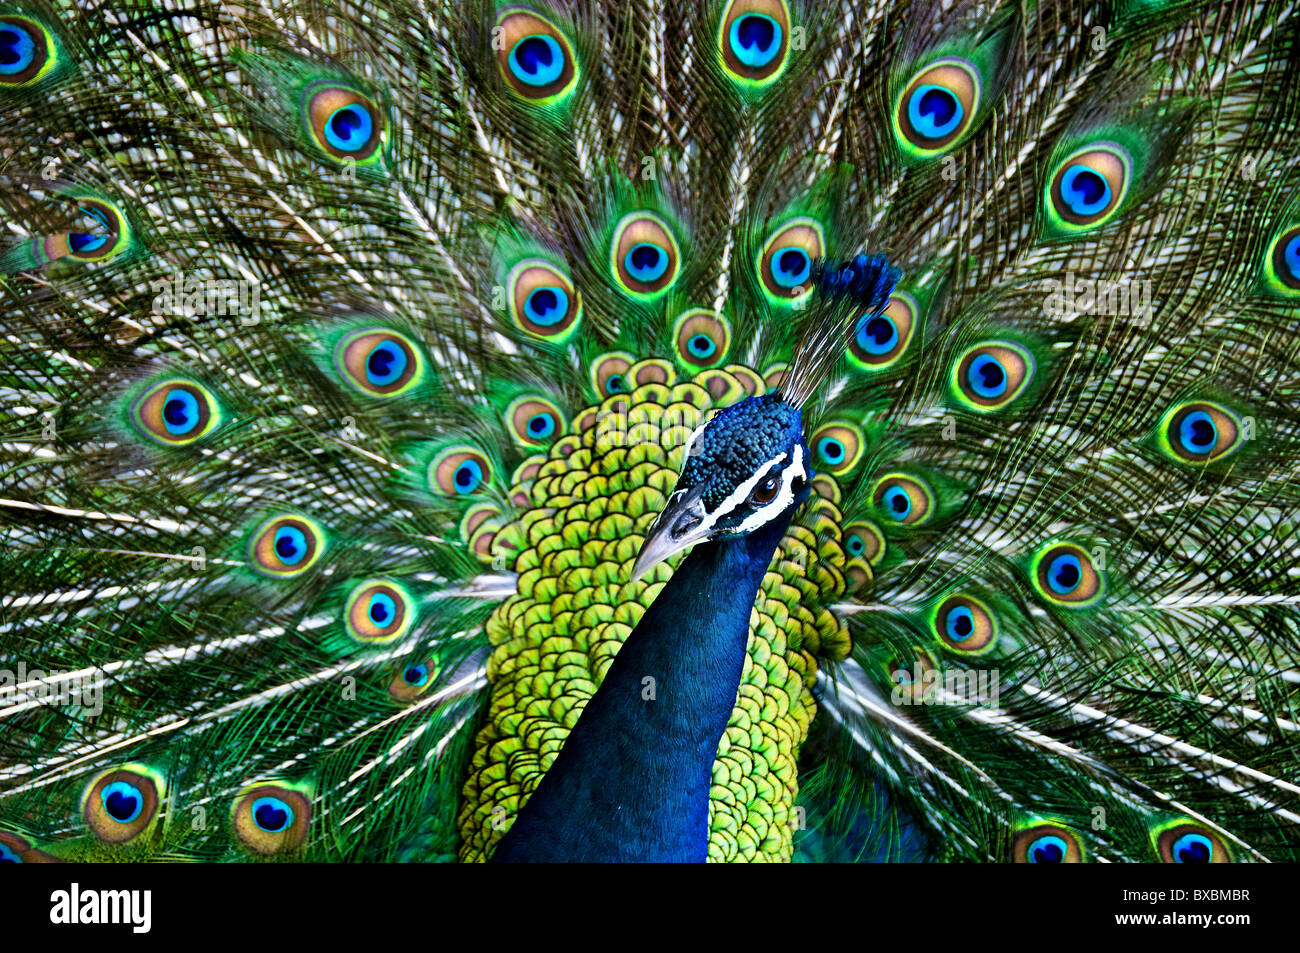 A peacock displaying it's plumage. - Stock Image